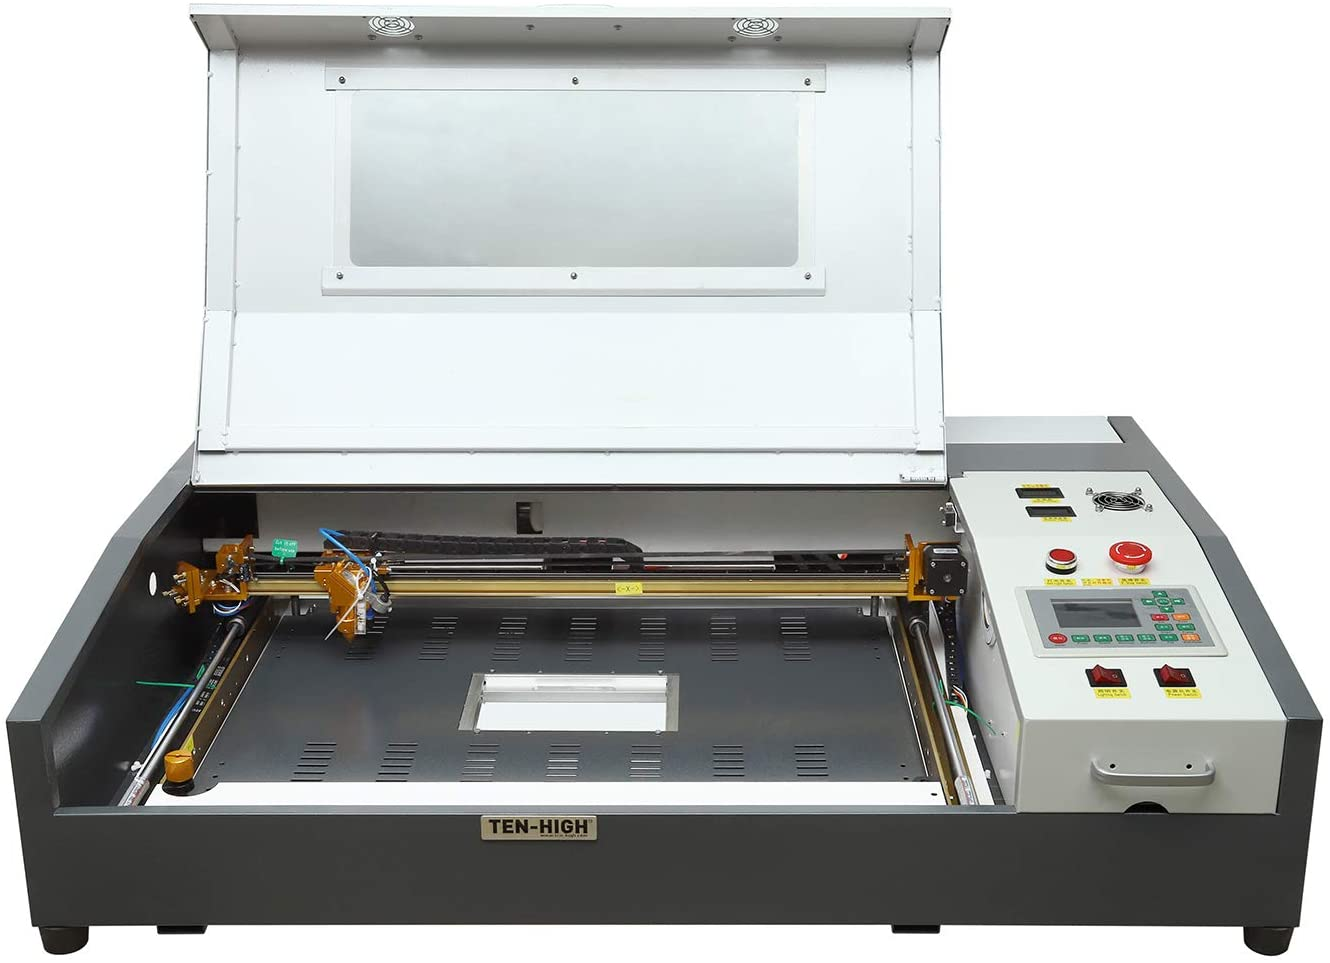 TEN-HIGH Laser Engraving Cutting Machine 60W Laser Cutter 4060 400x600mm 15.7x23.6 inches with Small Desktop, Offline Version